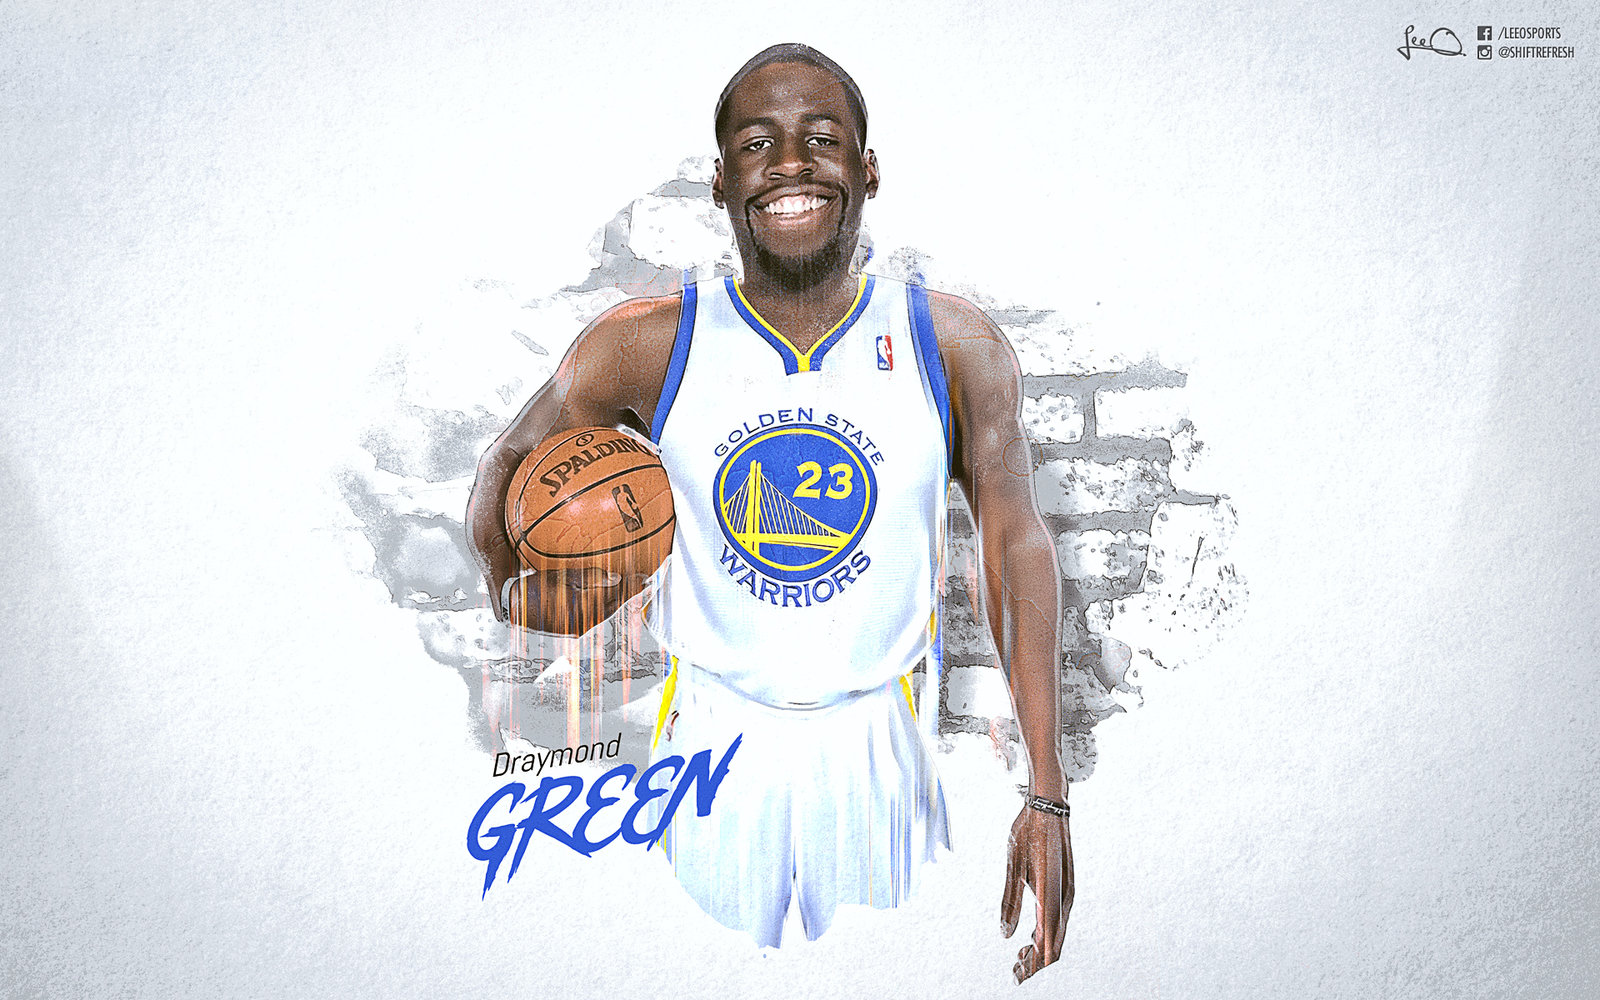 draymond green wallpapers high resolution and quality download